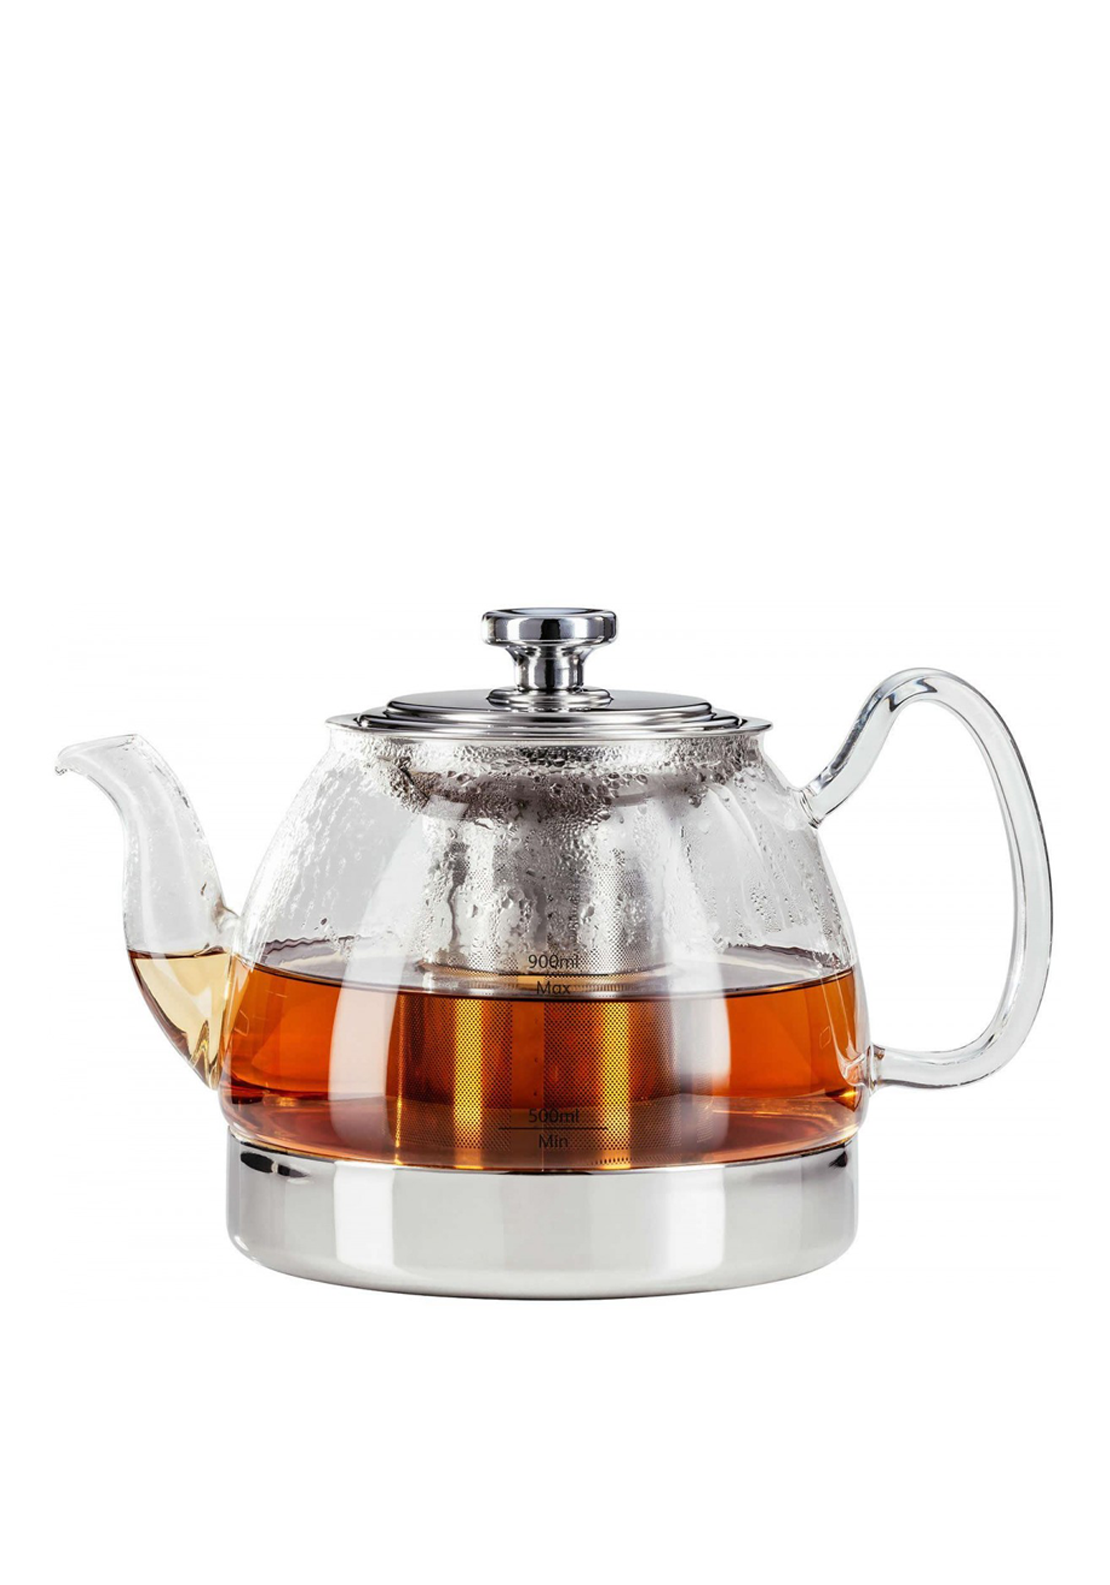 Judge Hob Top Glass Teapot with Removable Stainless Steel Infuser, 90ml